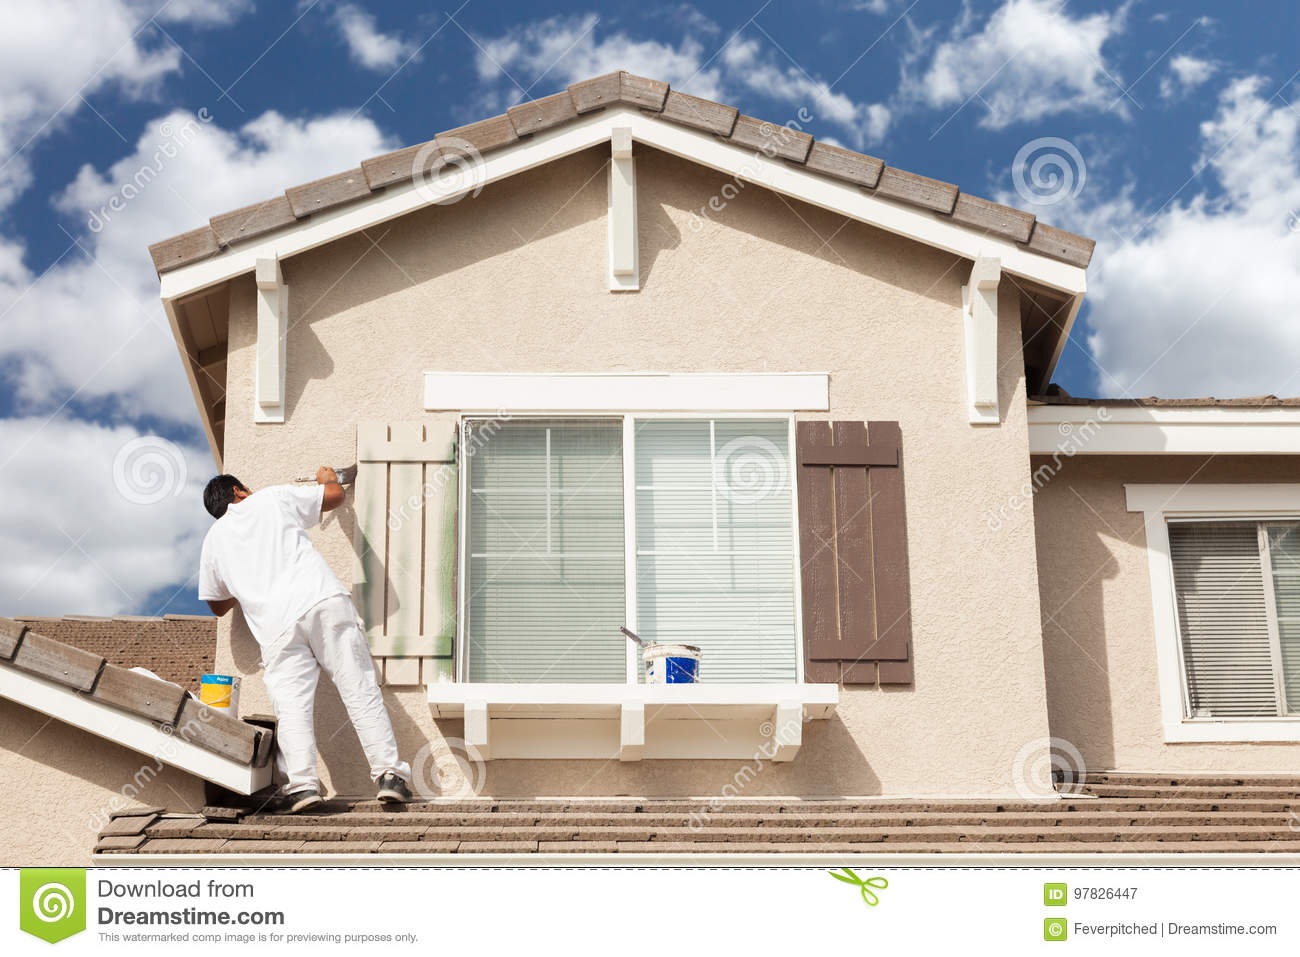 Professional House Painter Painting the Trim And Shutters of A H